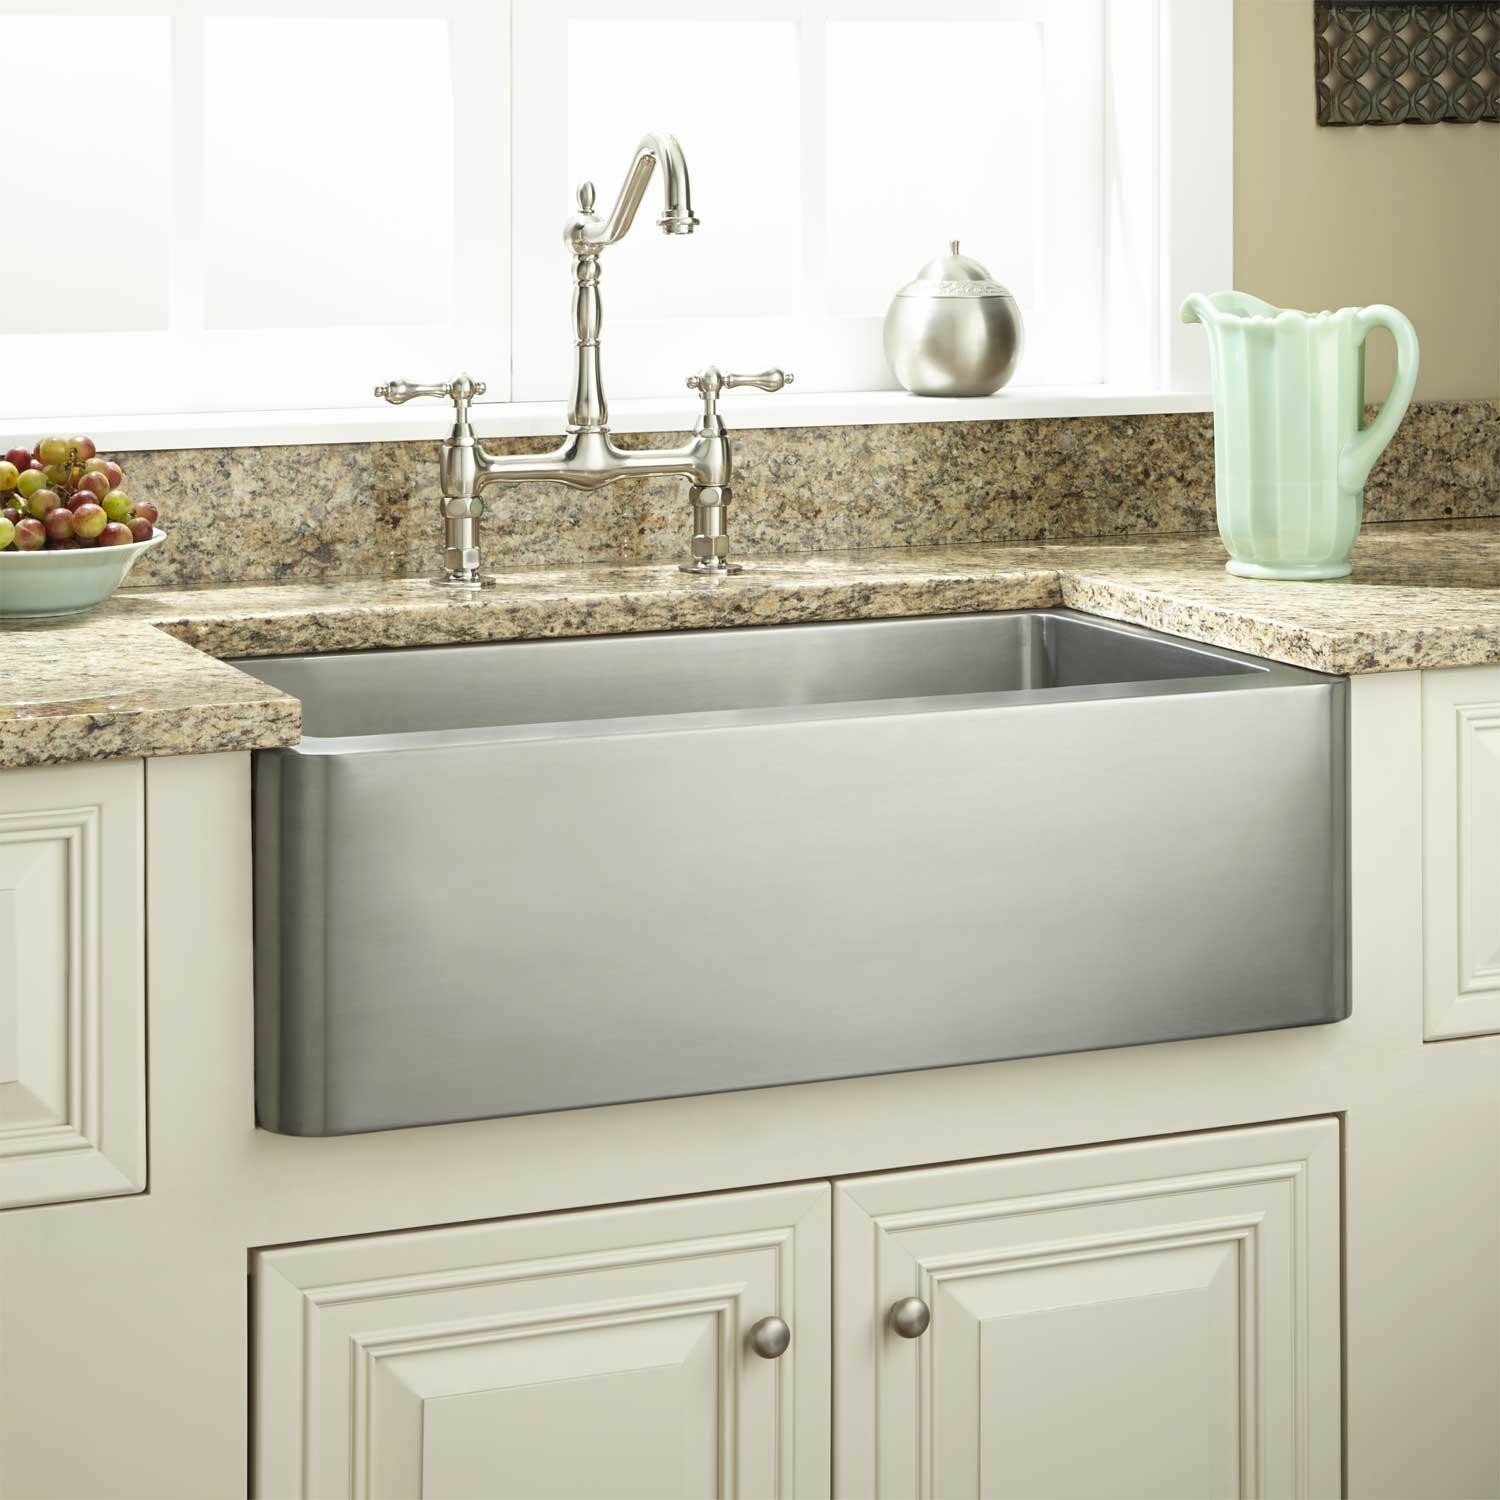 Ss Sinks Kitchen | Kitchen Sinks Stainless Steel Undermount | Kitchen Sinks Stainless Steel